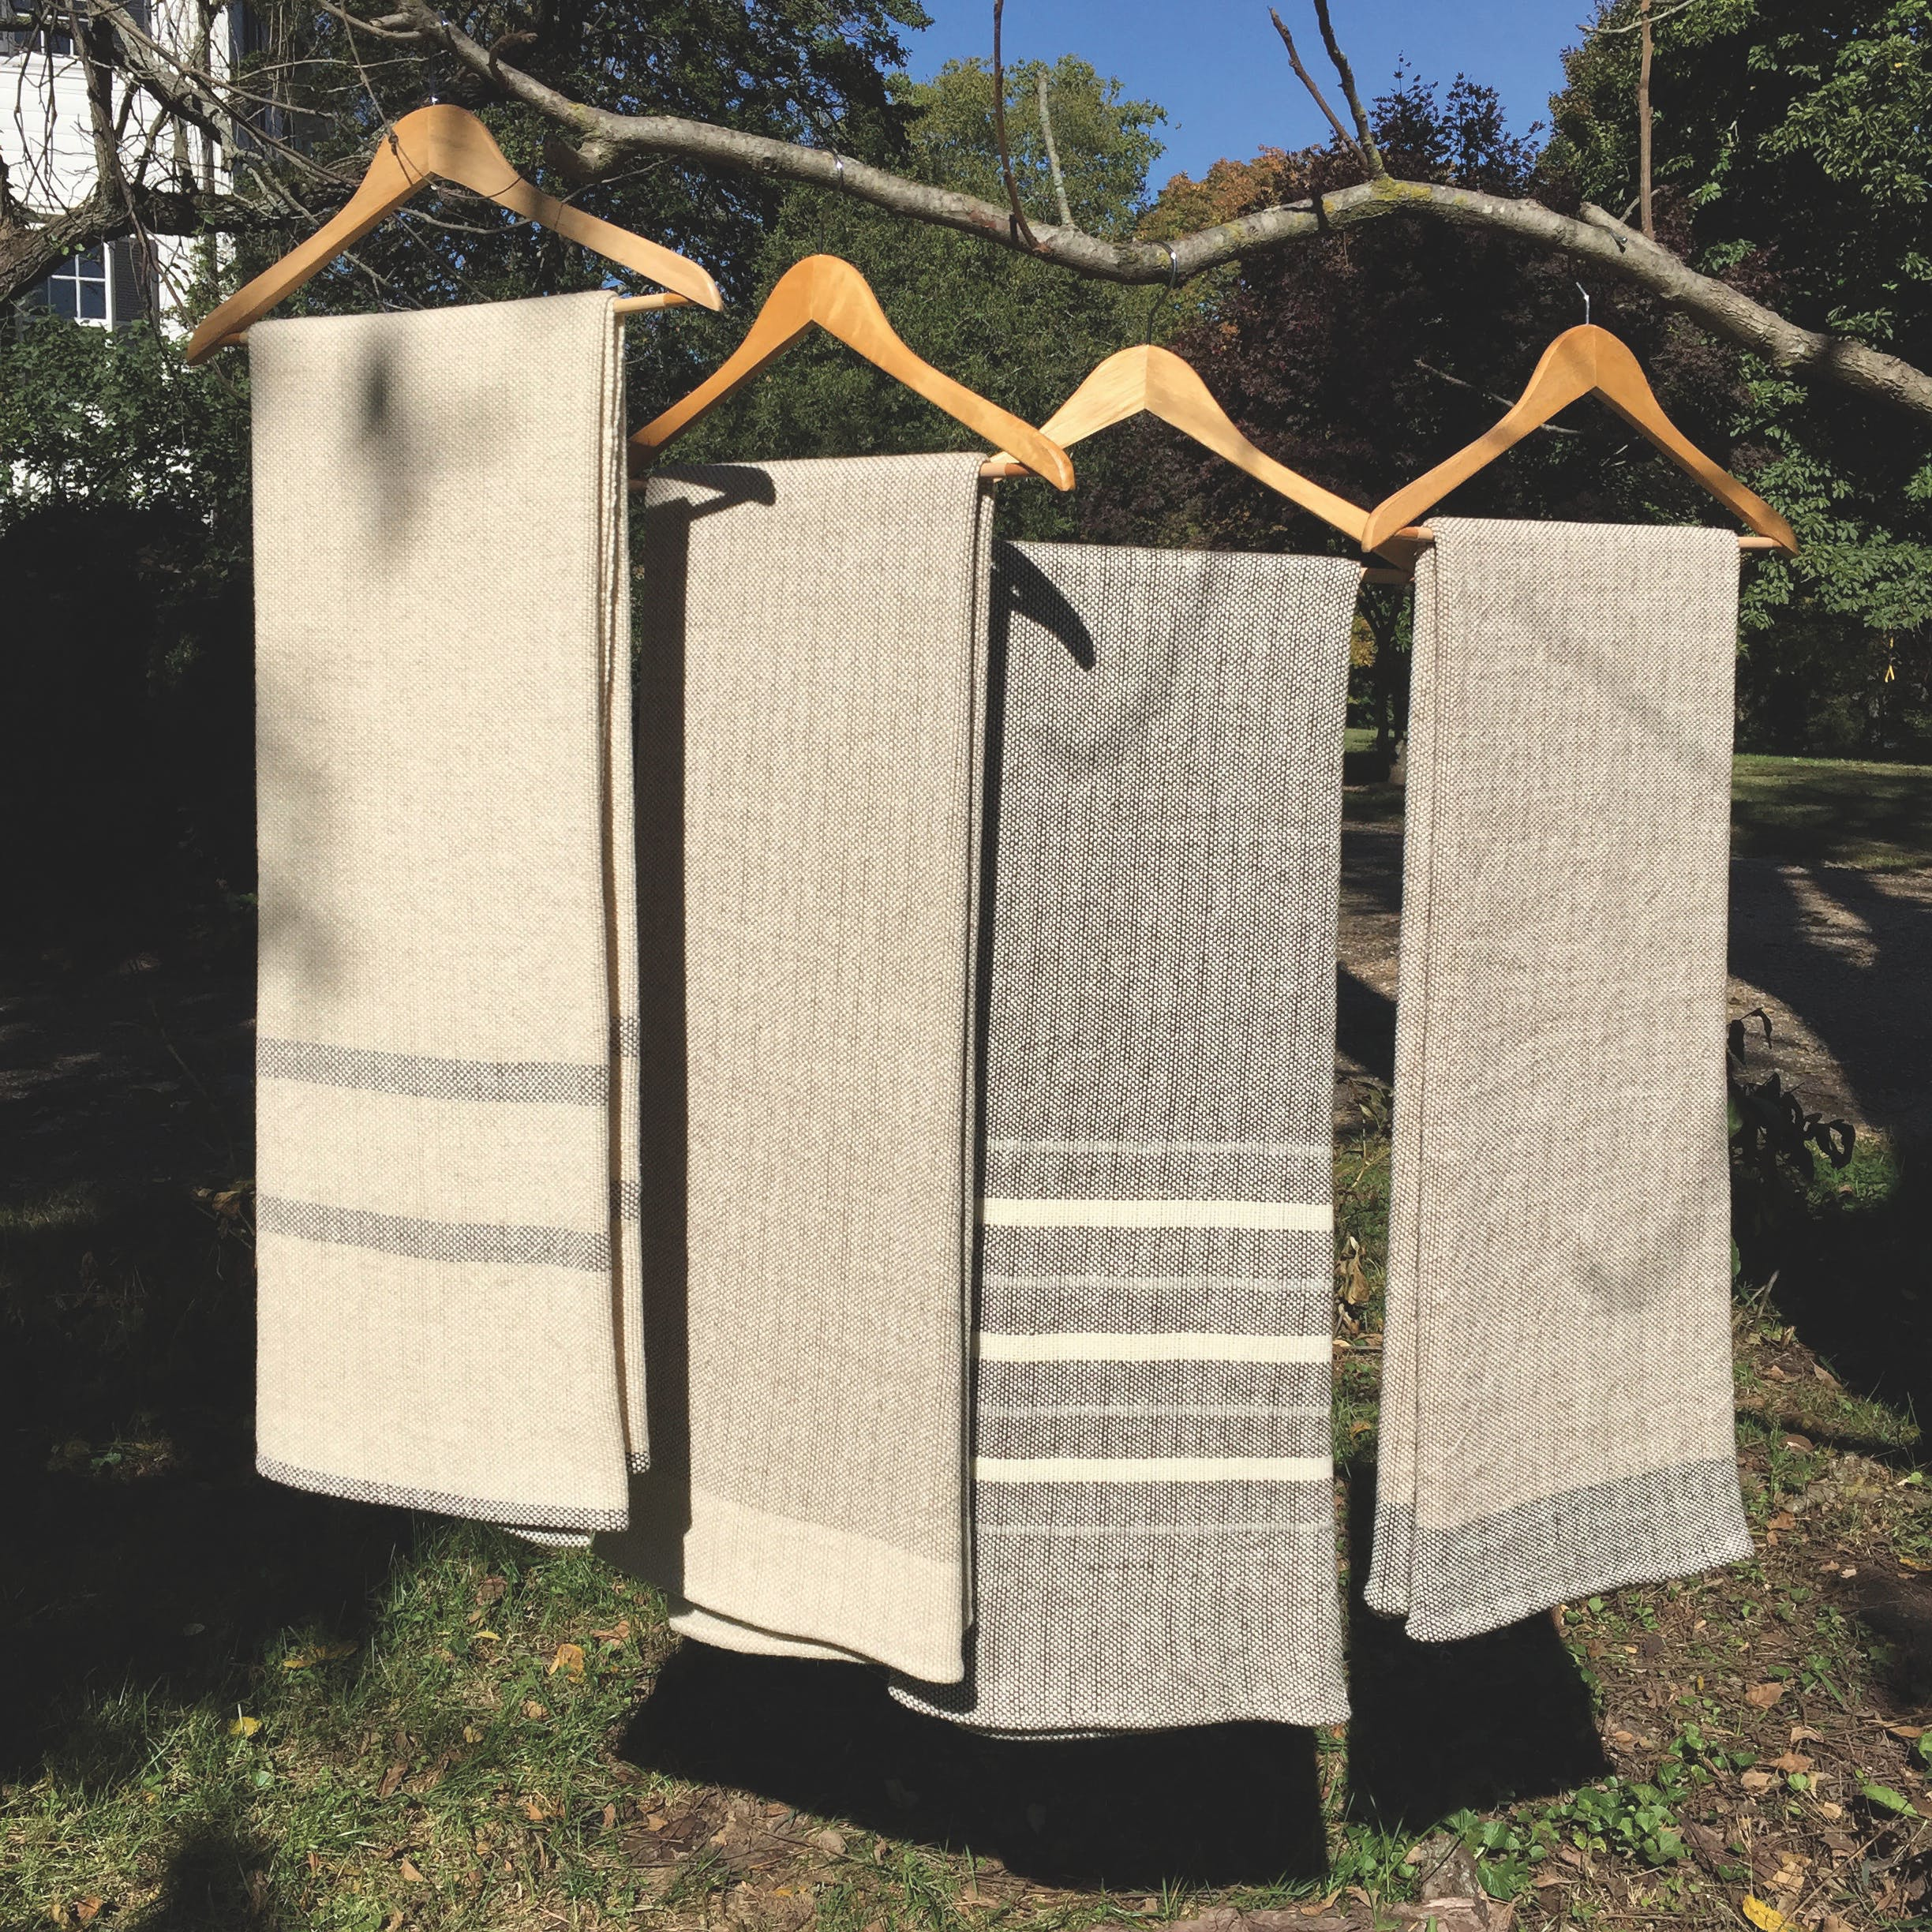 Four gray throw blankets on shirt hangers outside